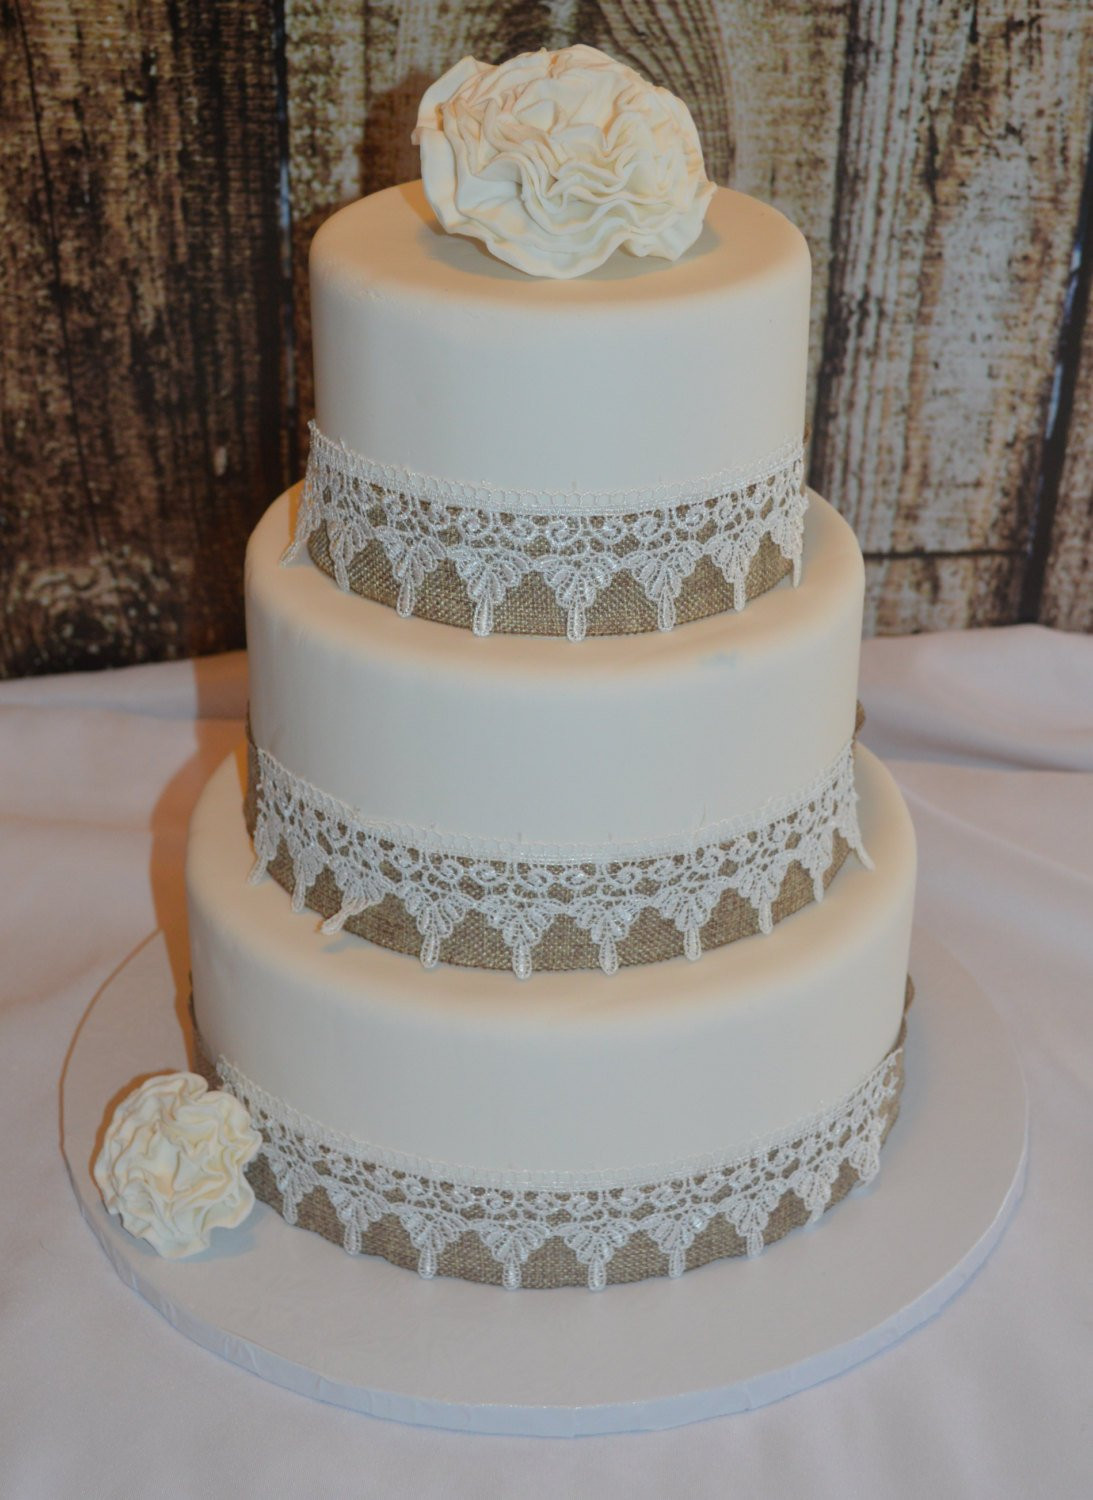 Wedding Cakes Three Tier  Three Tier Fondant Wedding Cake Fake Wedding Cake Faux